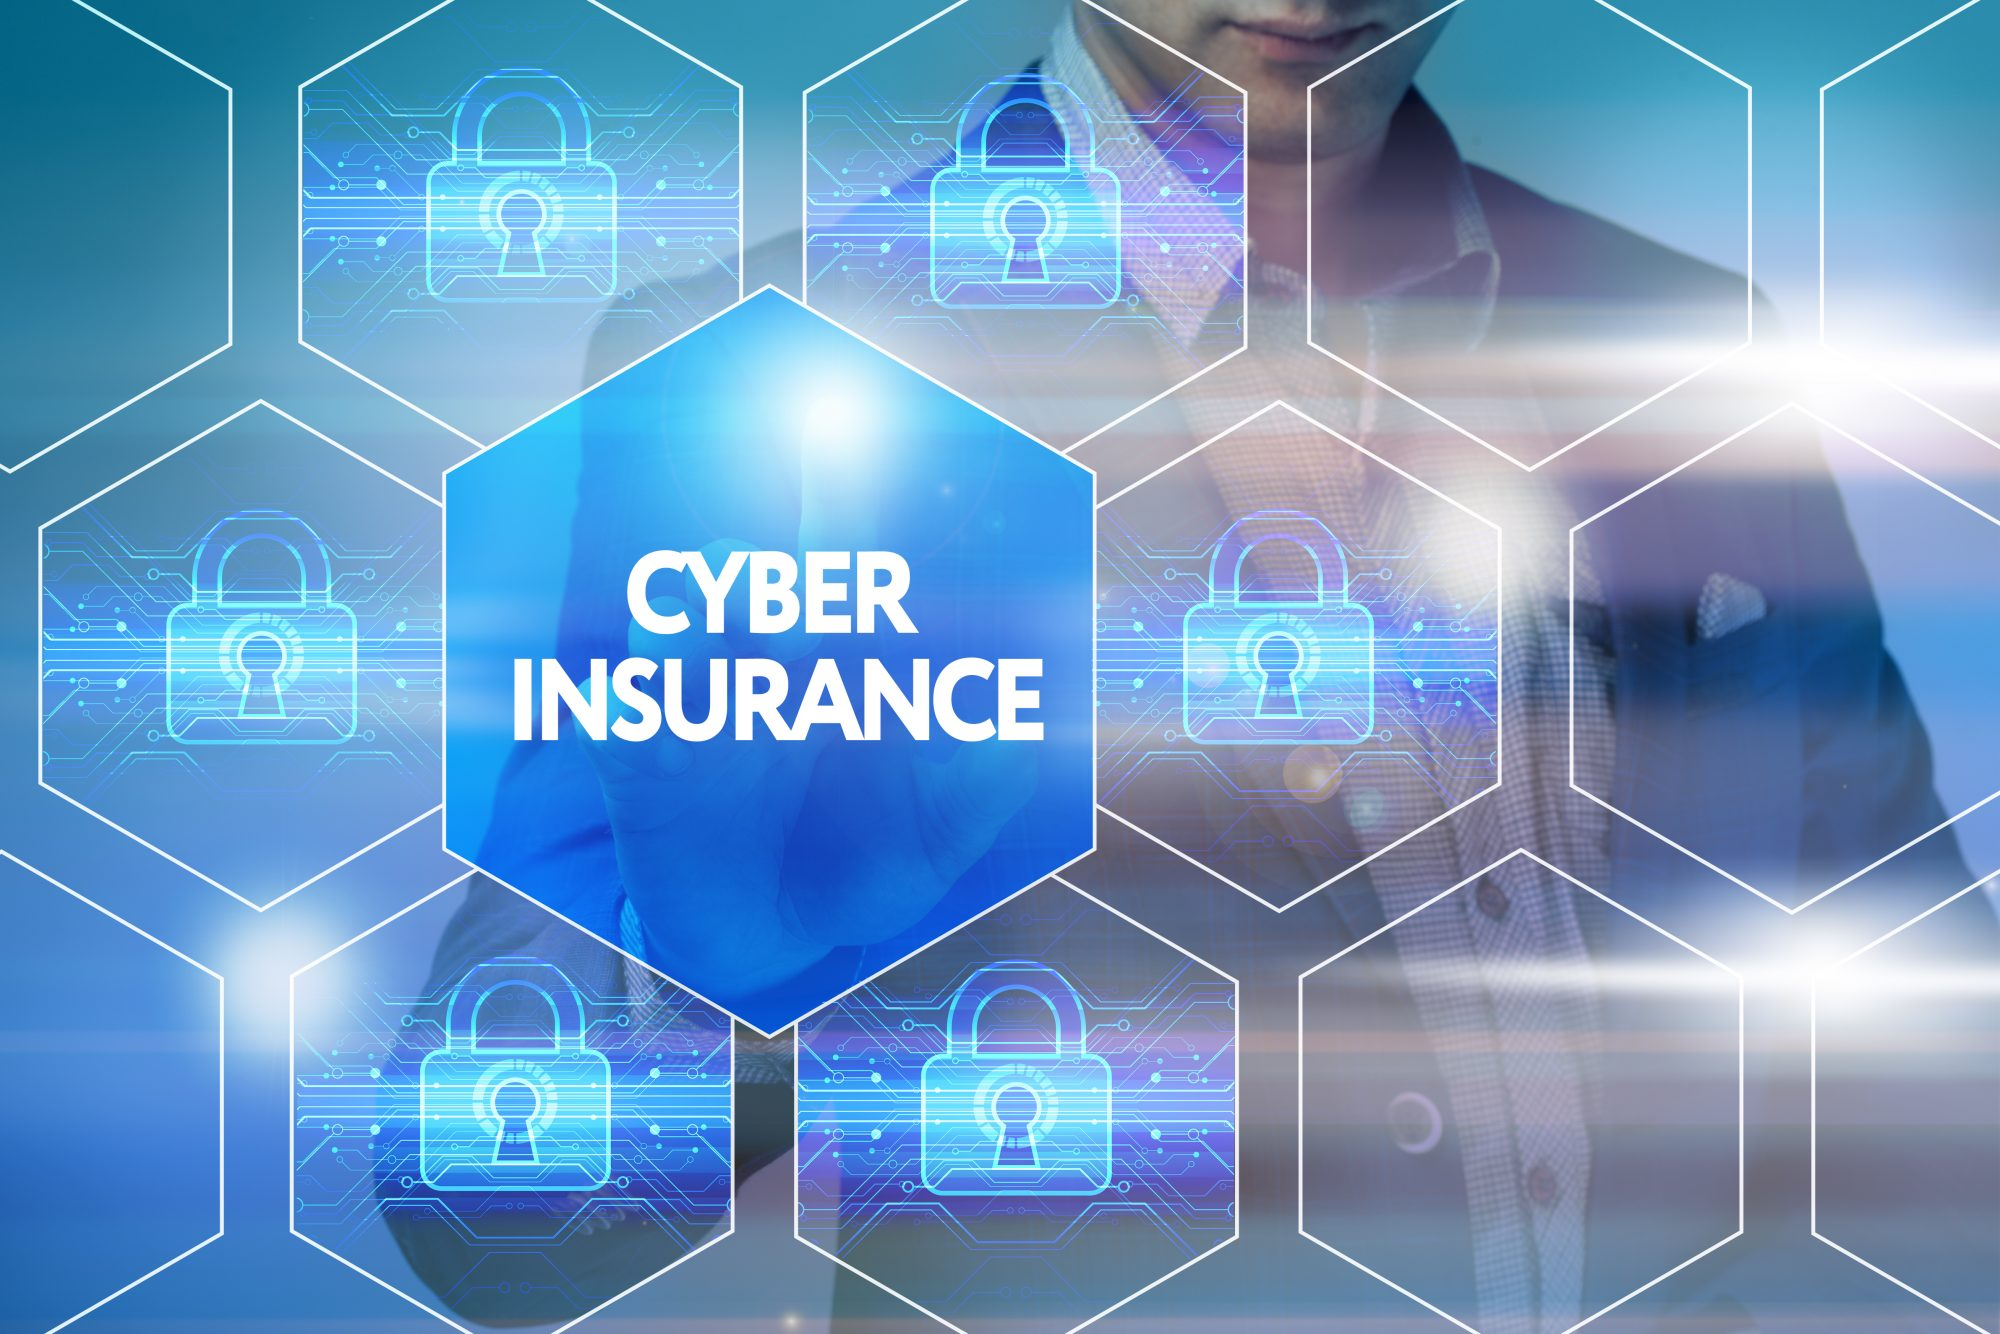 Request A Cyber Insurance Quote on Directors And Officers Liability Insurance